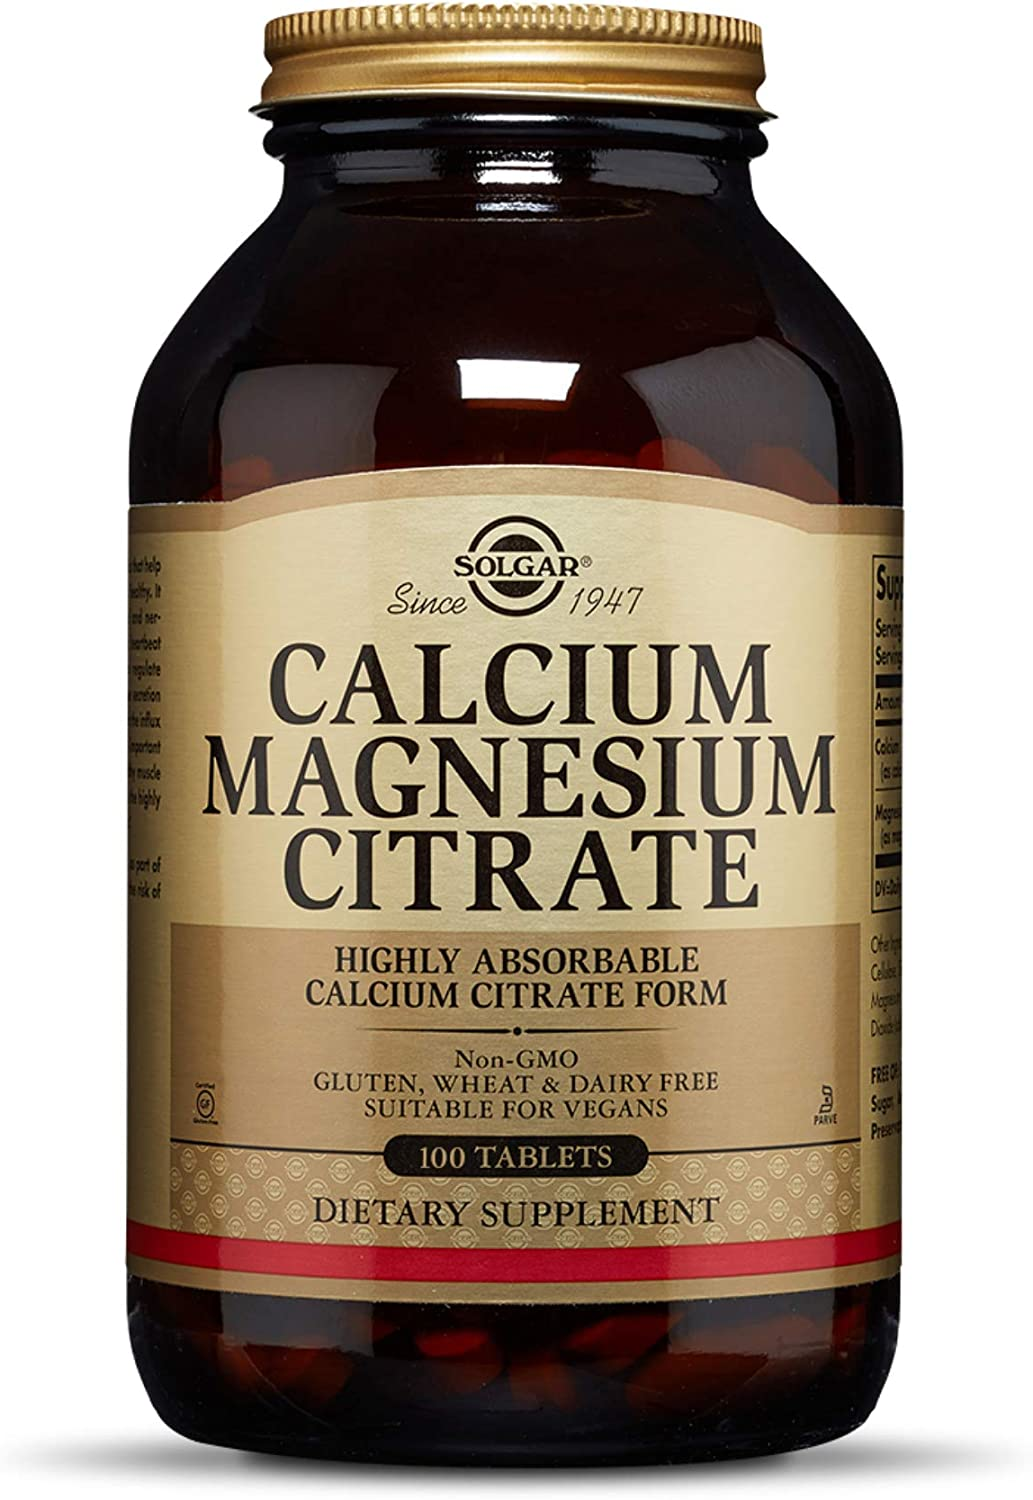 Solgar Calcium Magnesium Citrate, 100 Tablets - Supports Healthy Bones & Teeth - Musculoskeletal & Nervous System Support - Highly Absorbable - Non-GMO, Vegan, Gluten Free, Dairy Free - 20 Servings